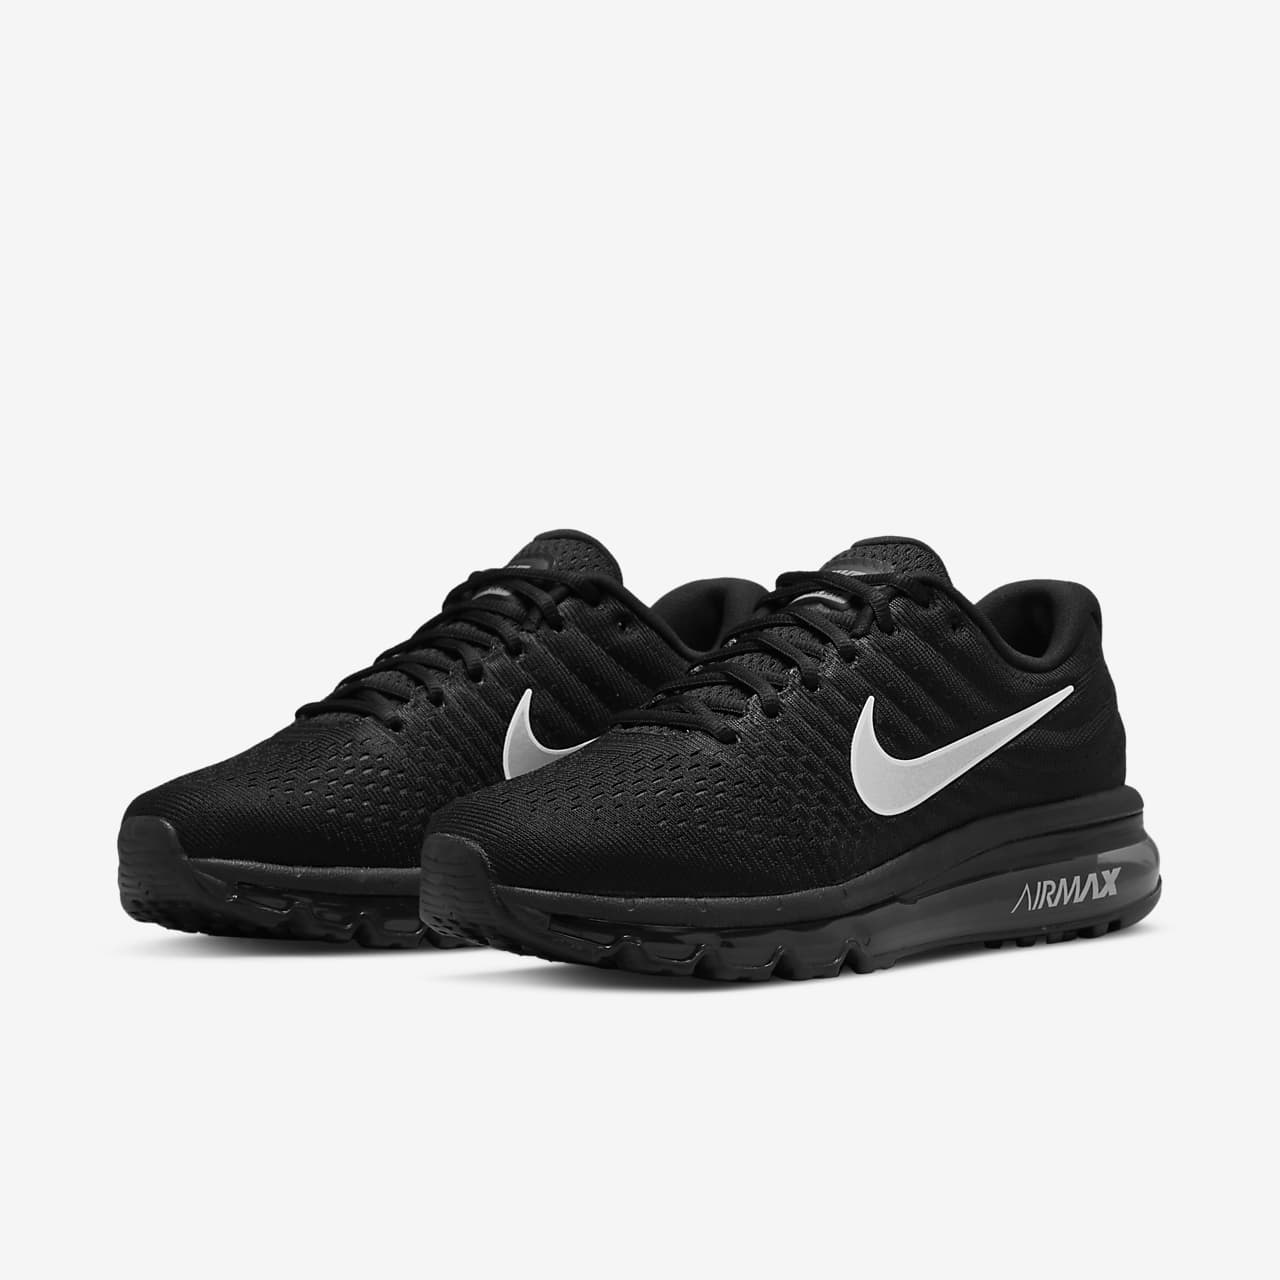 reputable site 75944 6f887 ... Nike Air Max 2017 Damenschuh